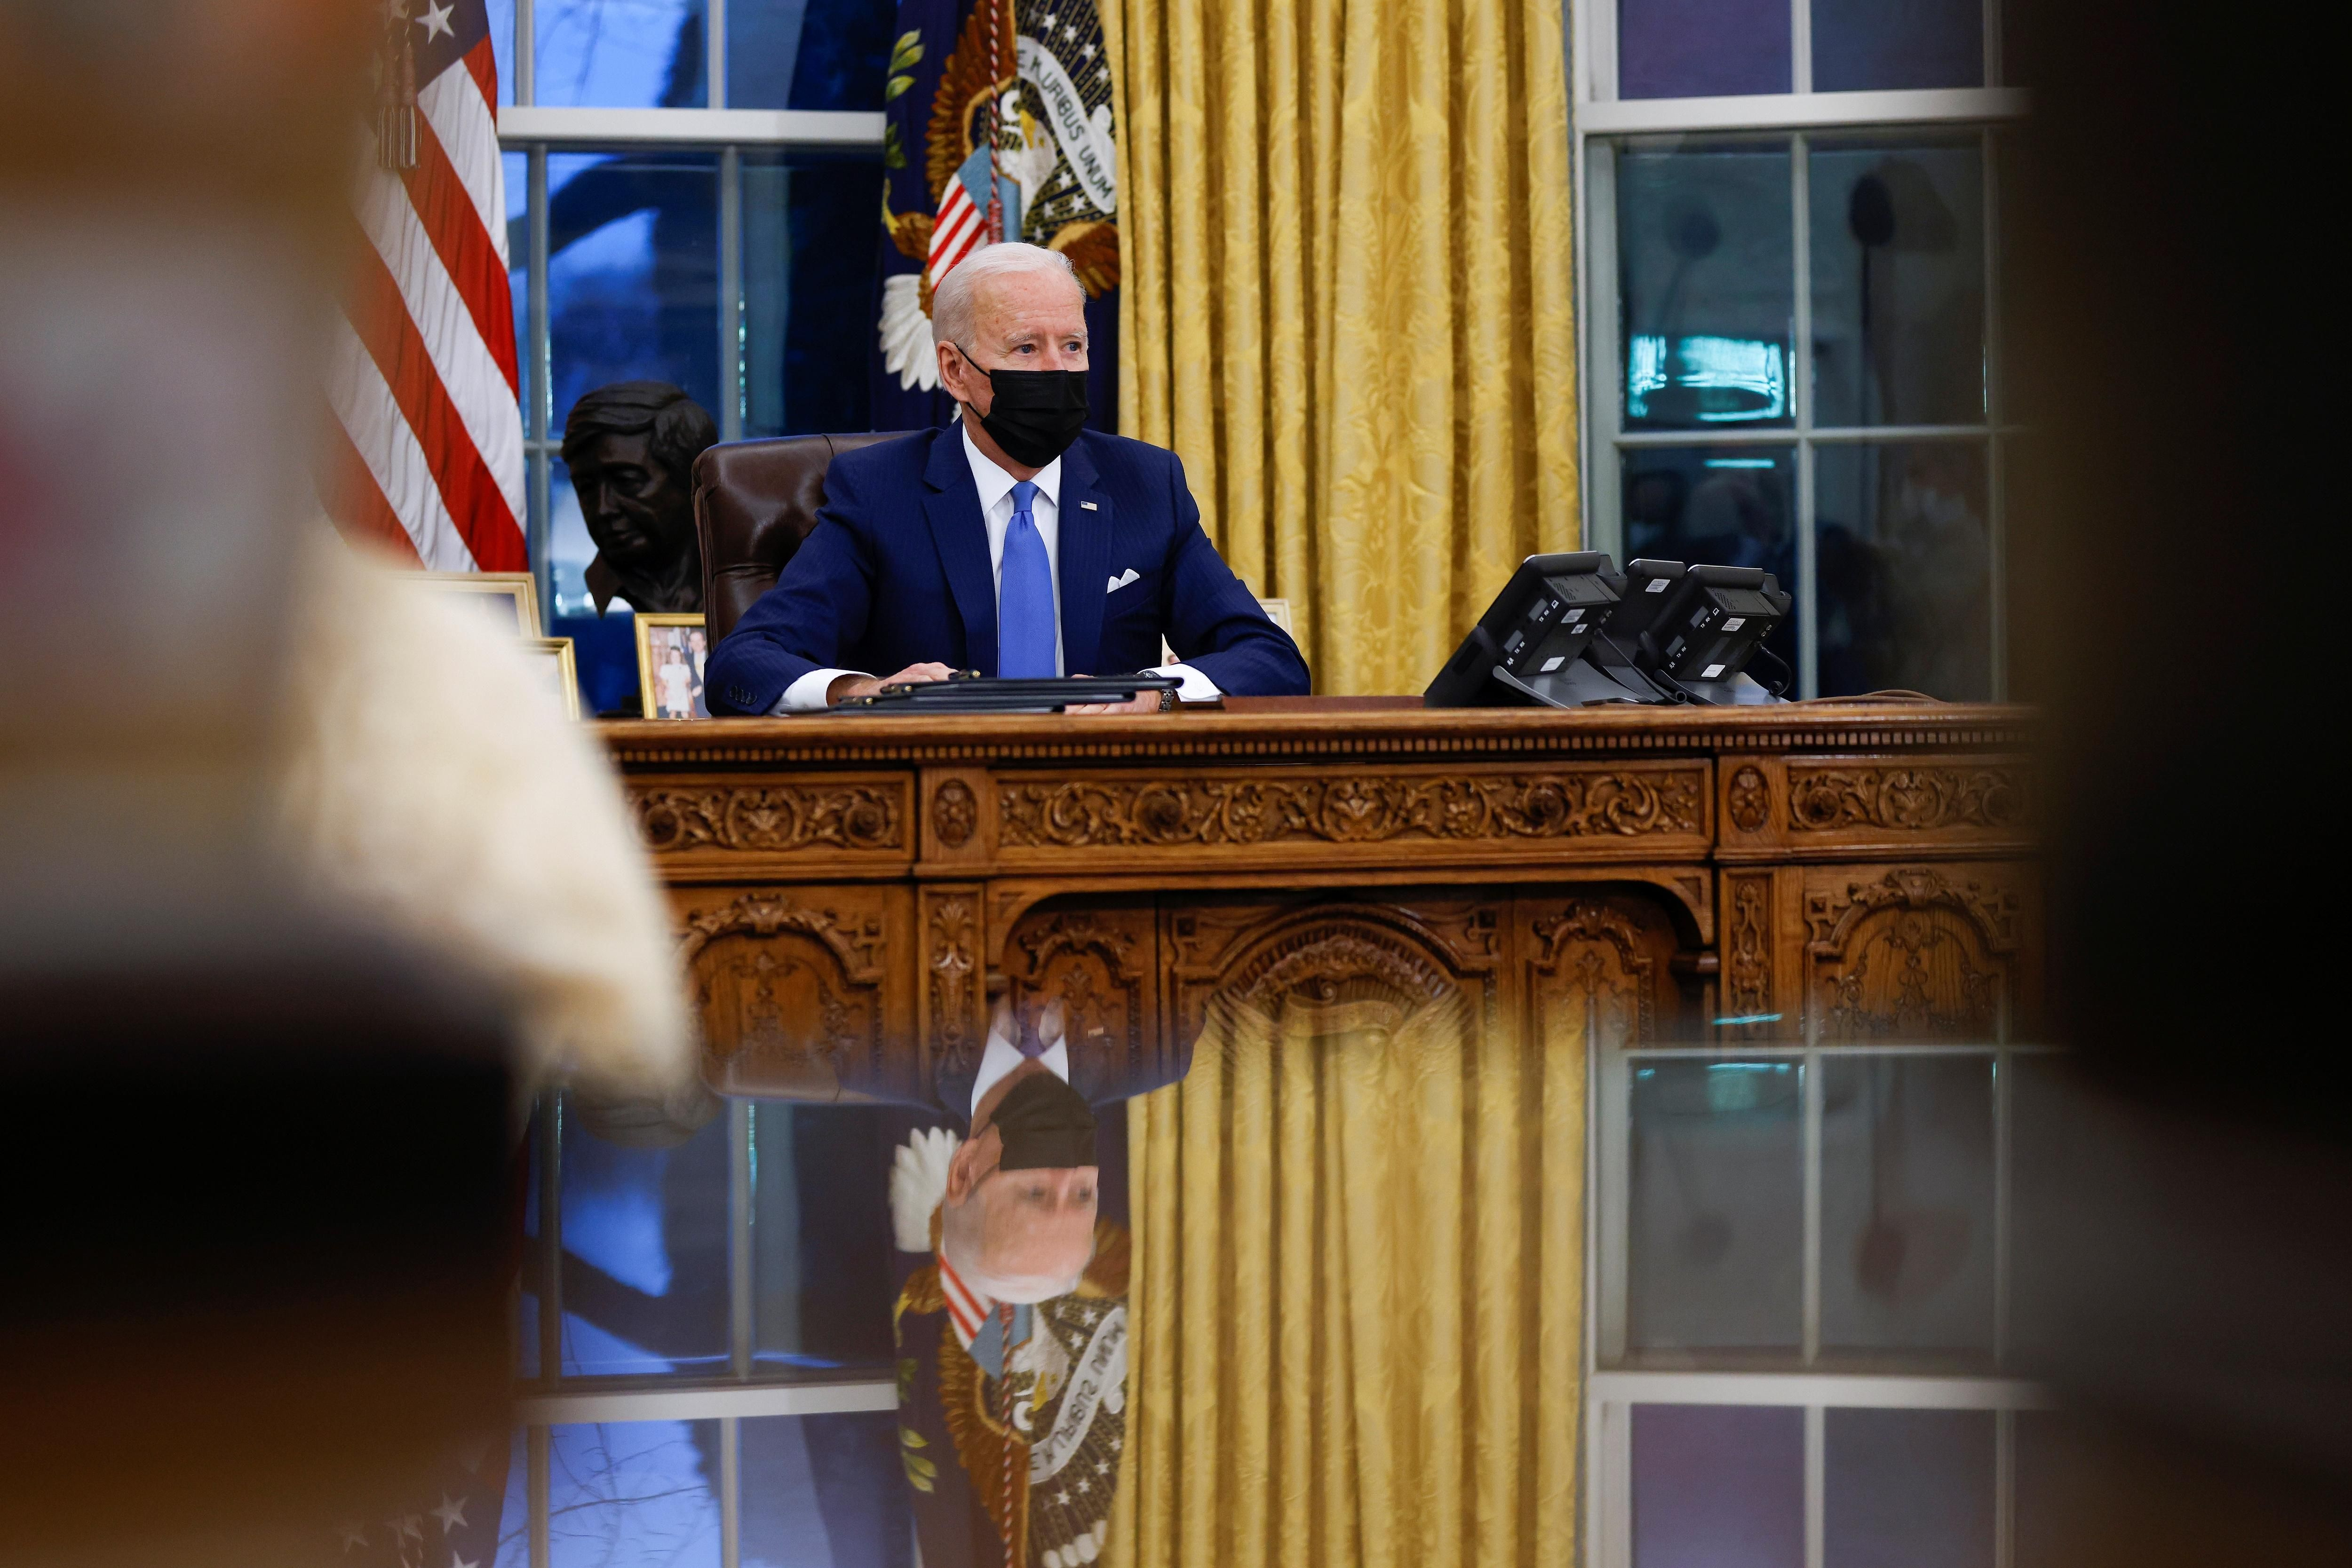 U.S. President Joe Biden signs executive orders on immigration reform inside the Oval Office at the White House in Washington, U.S., February 2, 2021.